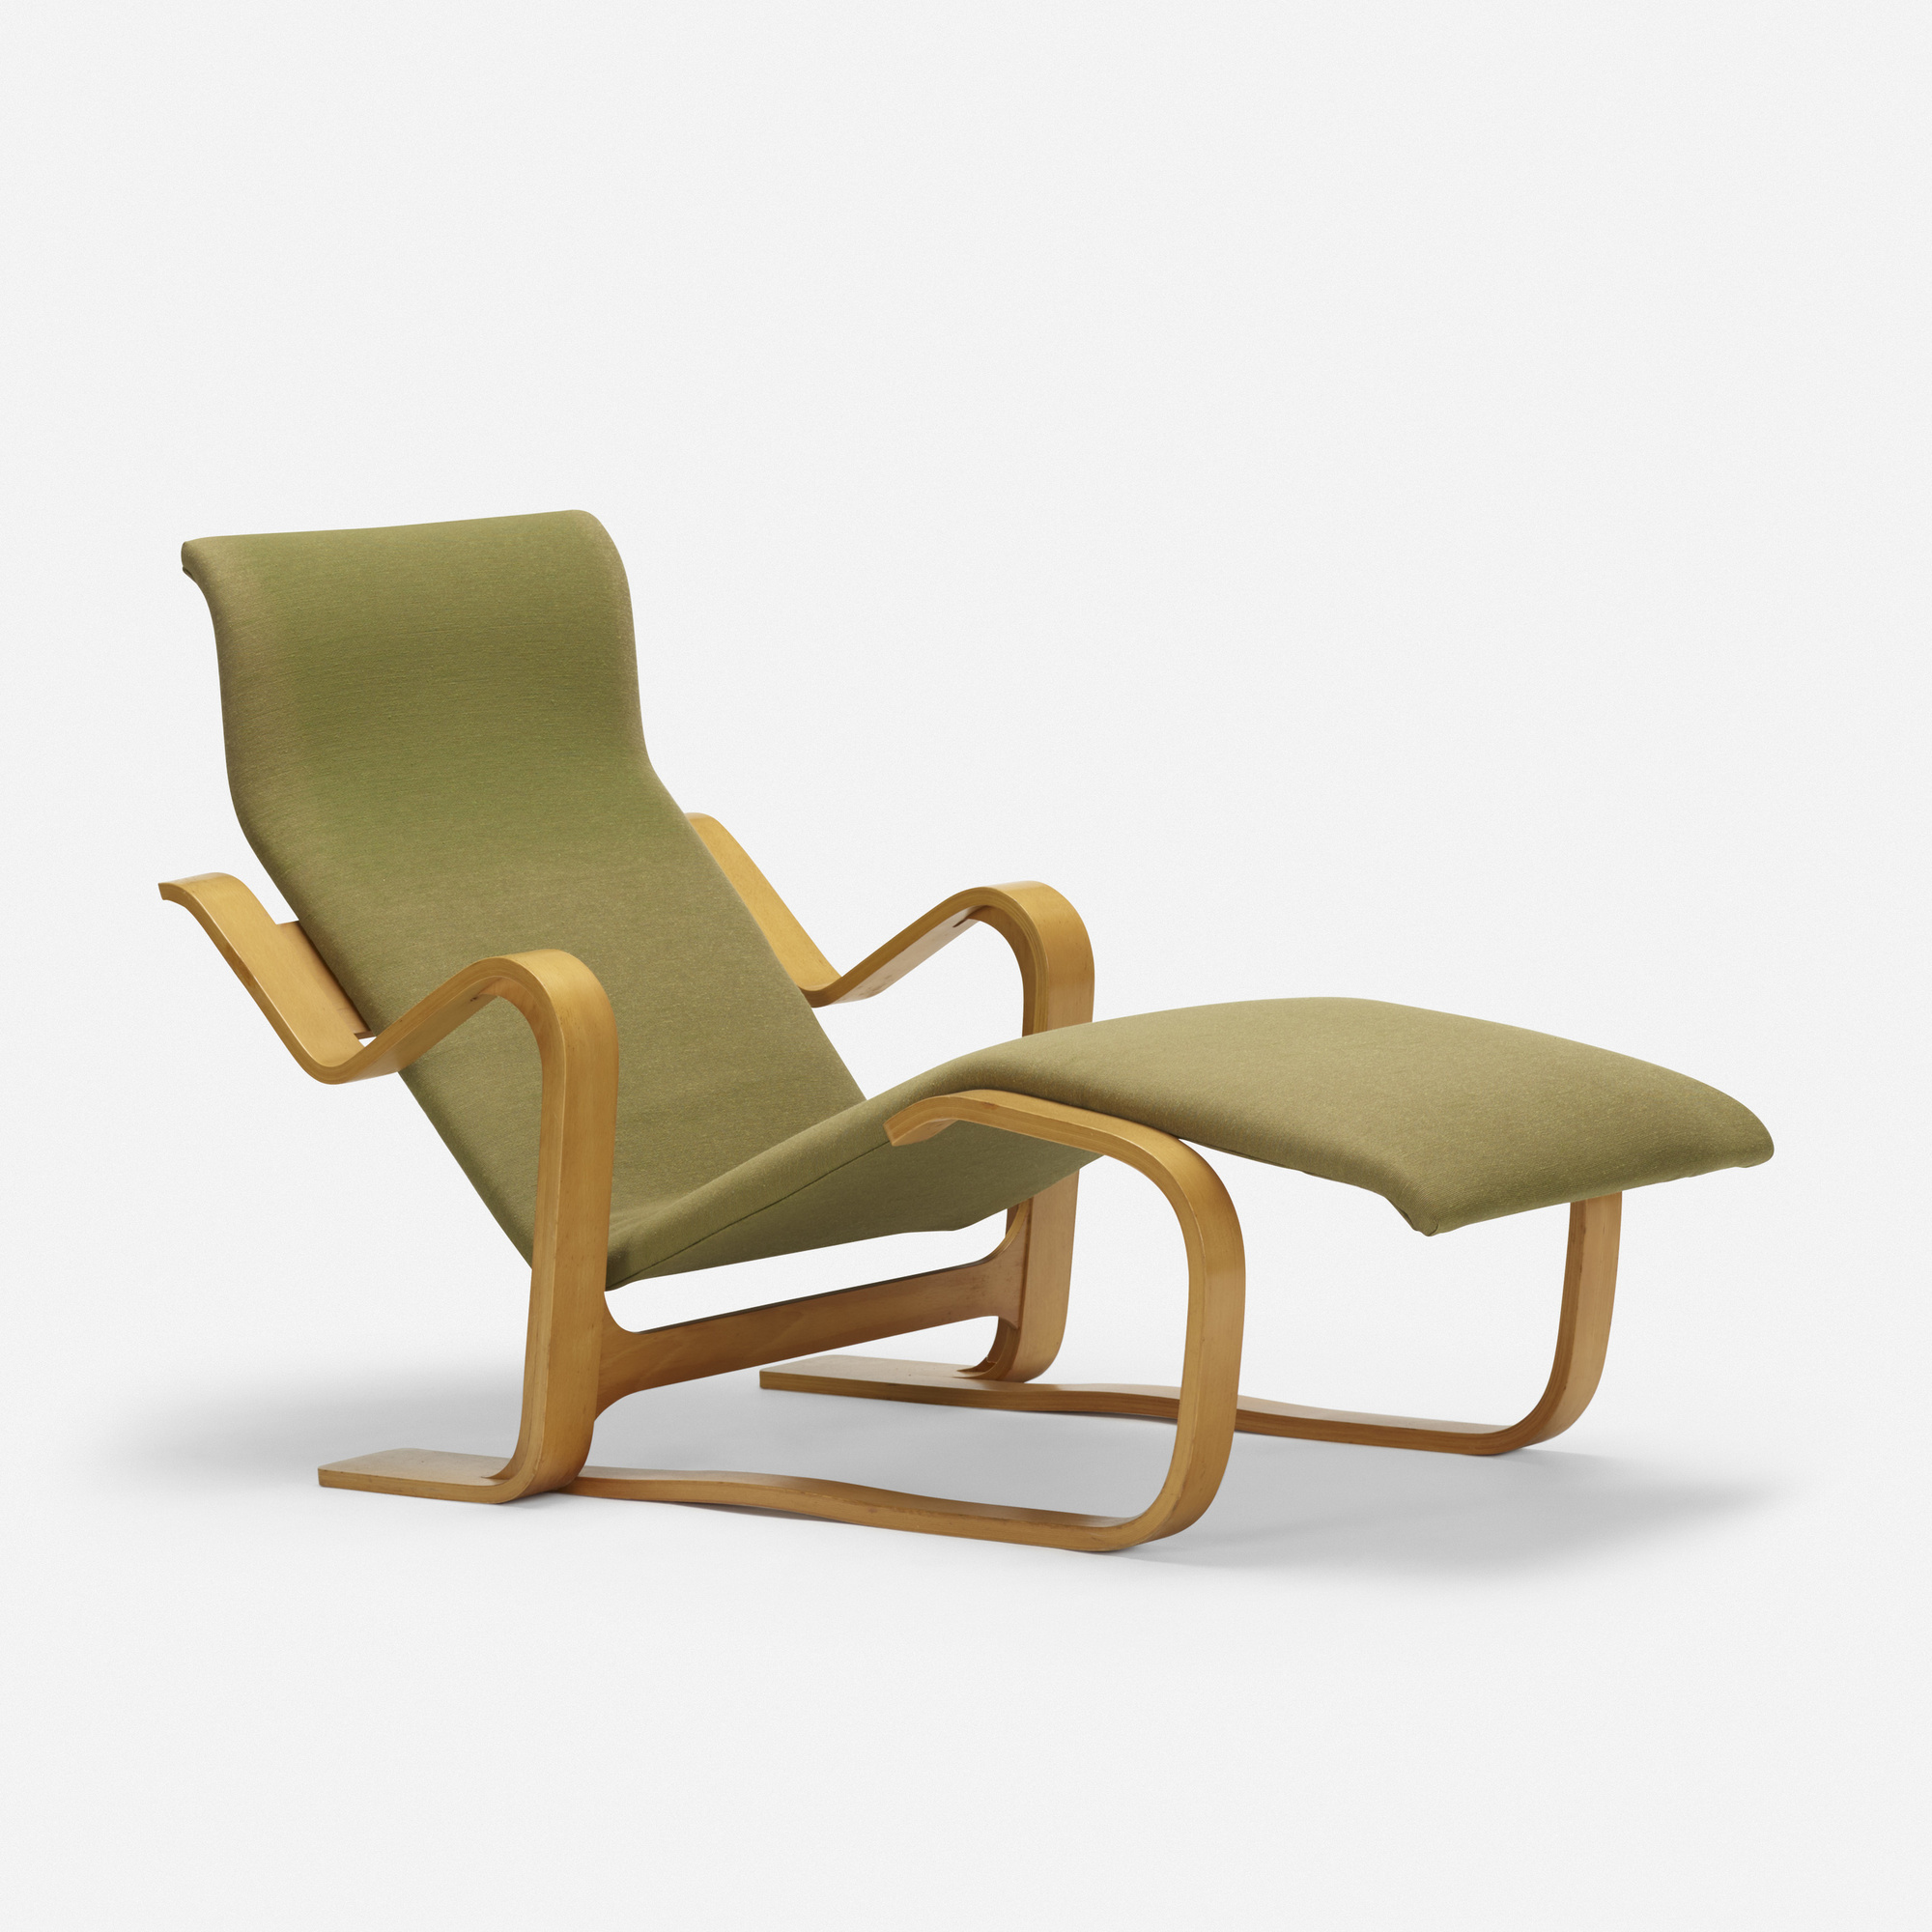 158 Marcel Breuer Long Chaise 1 Of 3